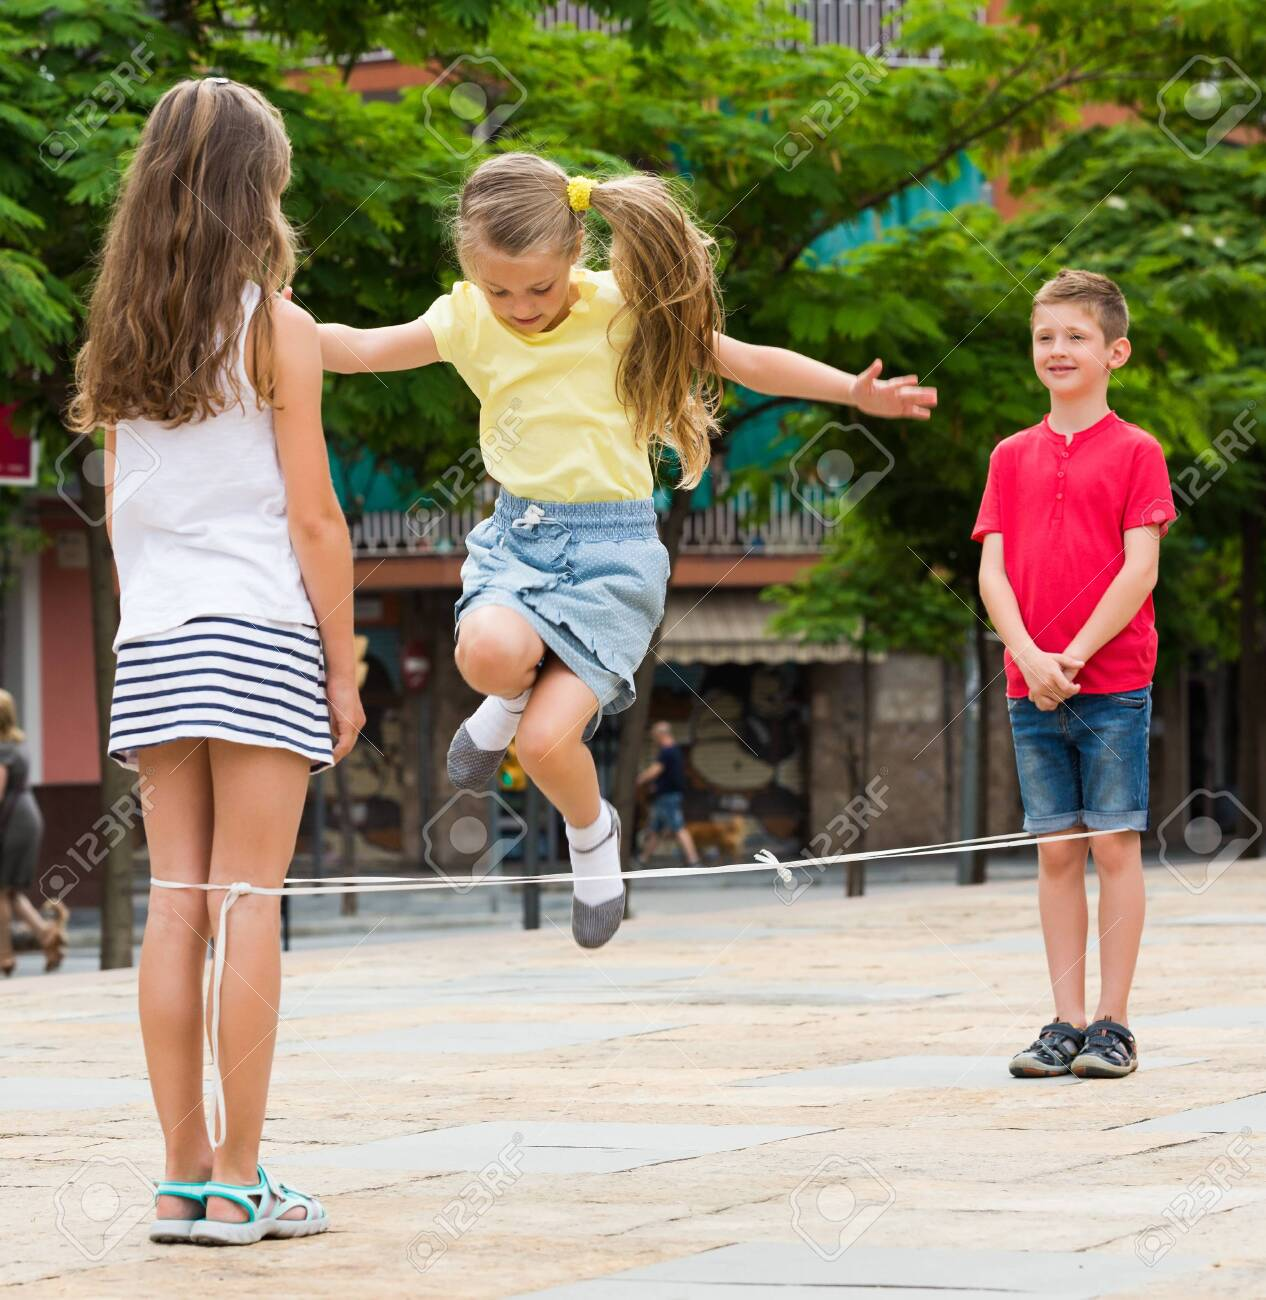 Energetic Kids Playing And Skipping On Elastic Jumping Rope In European Yard Stock Photo, Picture And Royalty Free Image. Image 124461006.